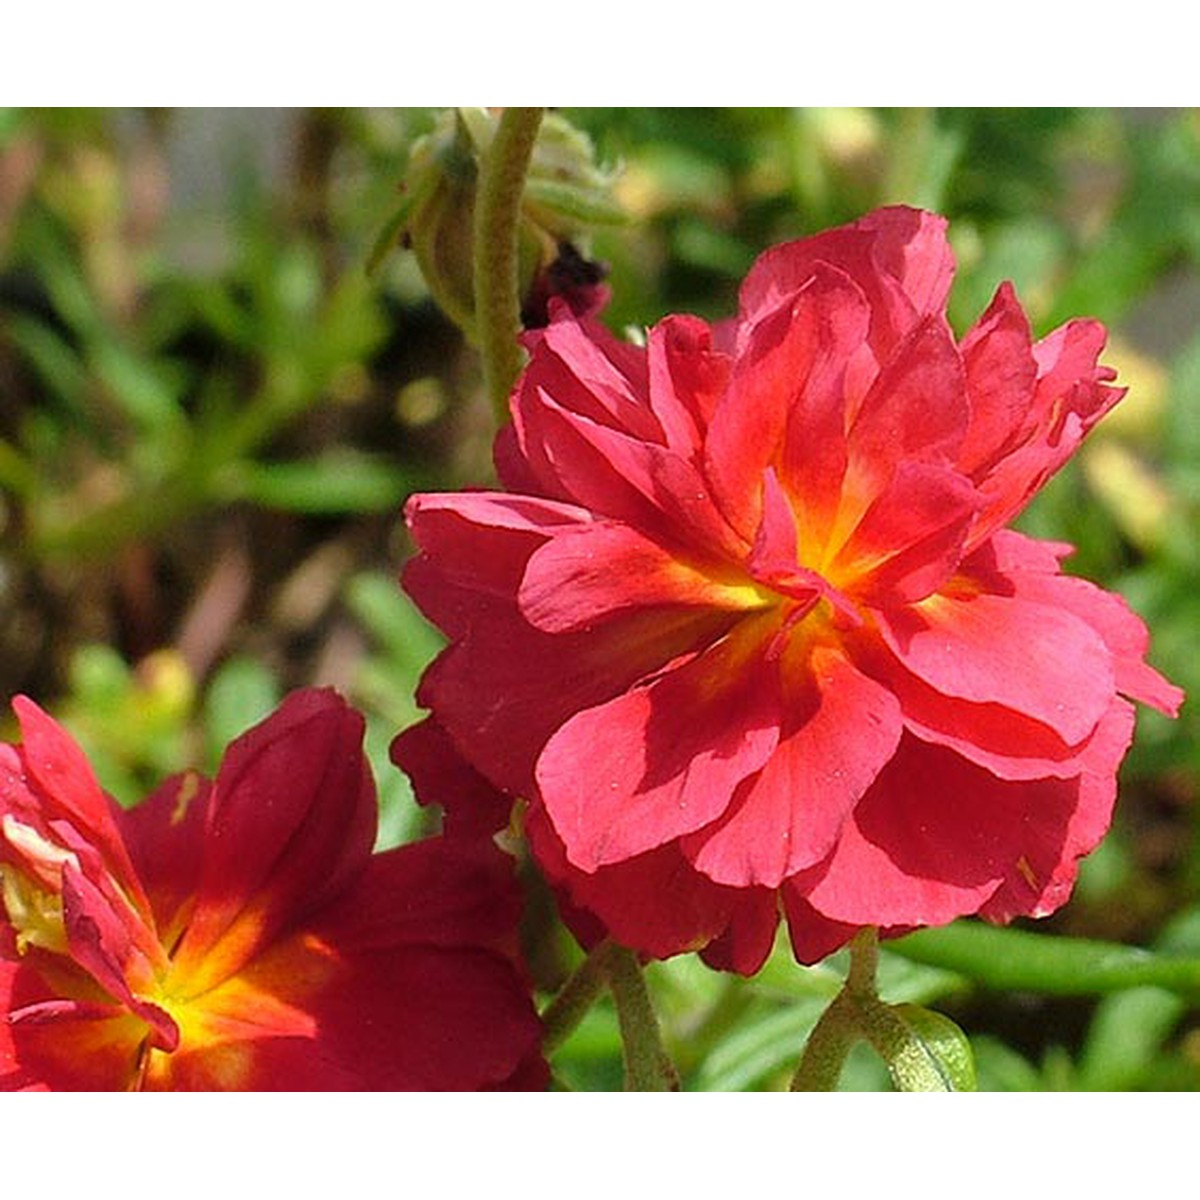 Schilliger Production  Helianthemum 'Cerise Queen'  12 cm